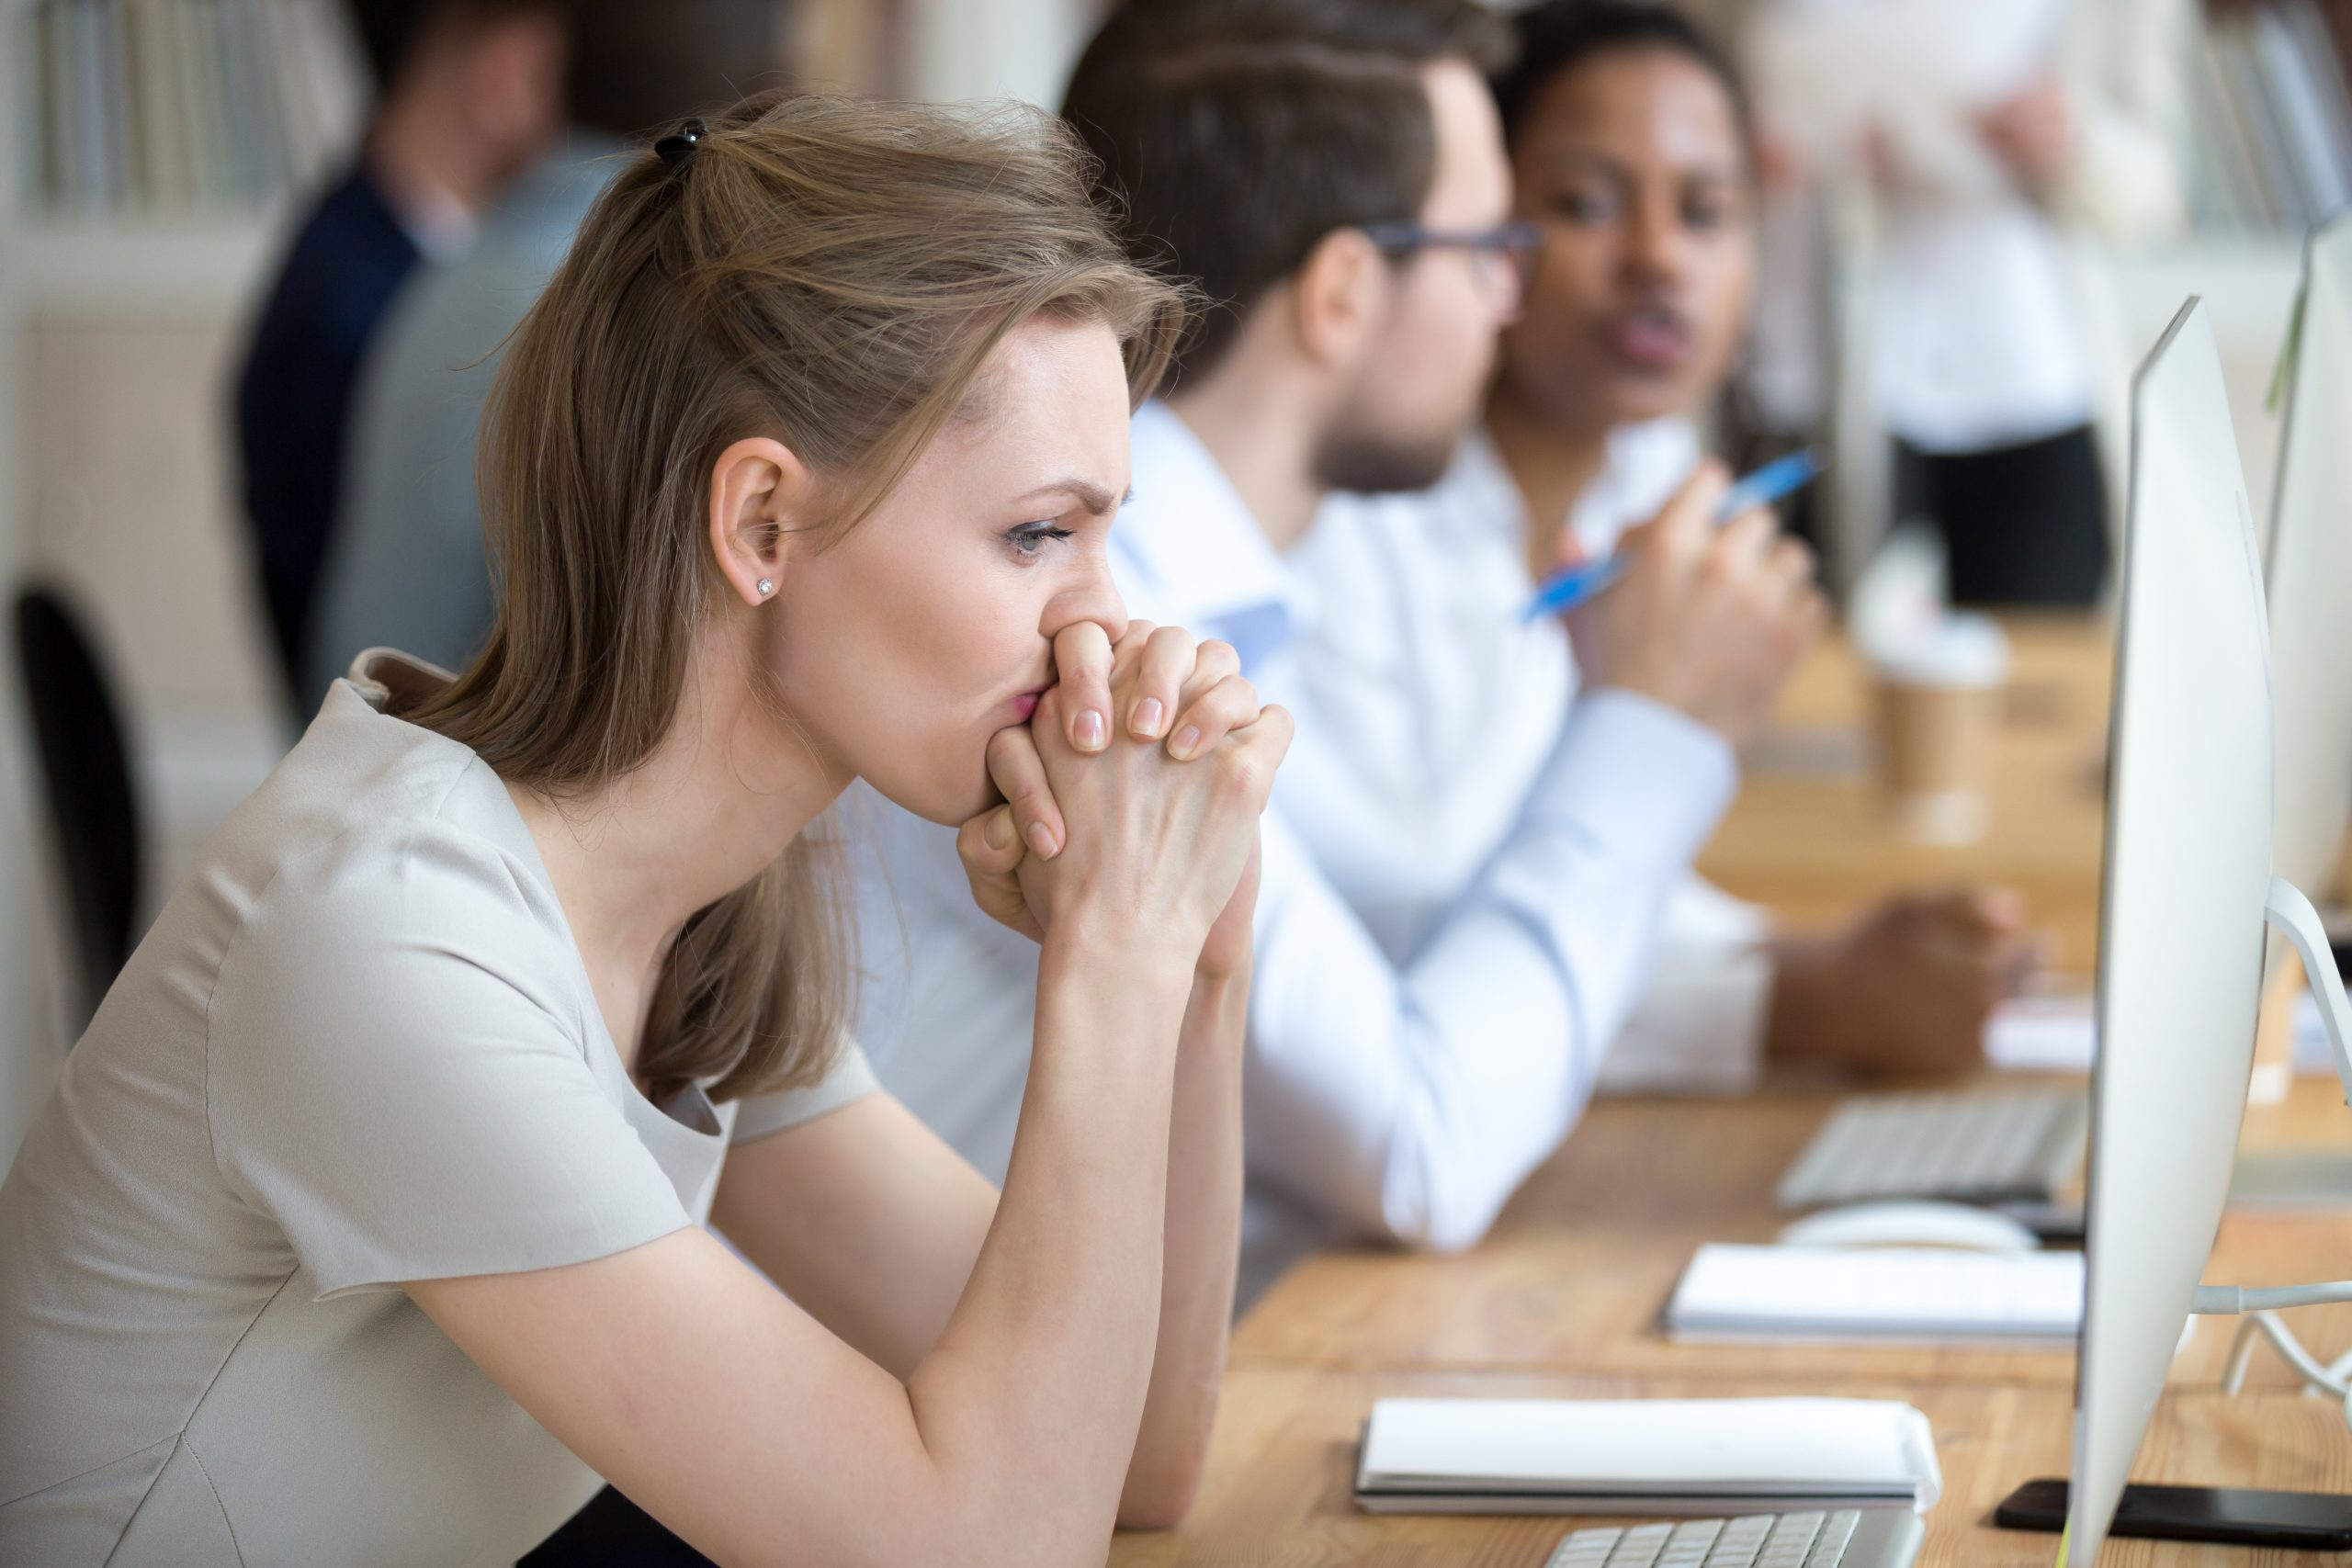 Woman employee having problems and doubts about business